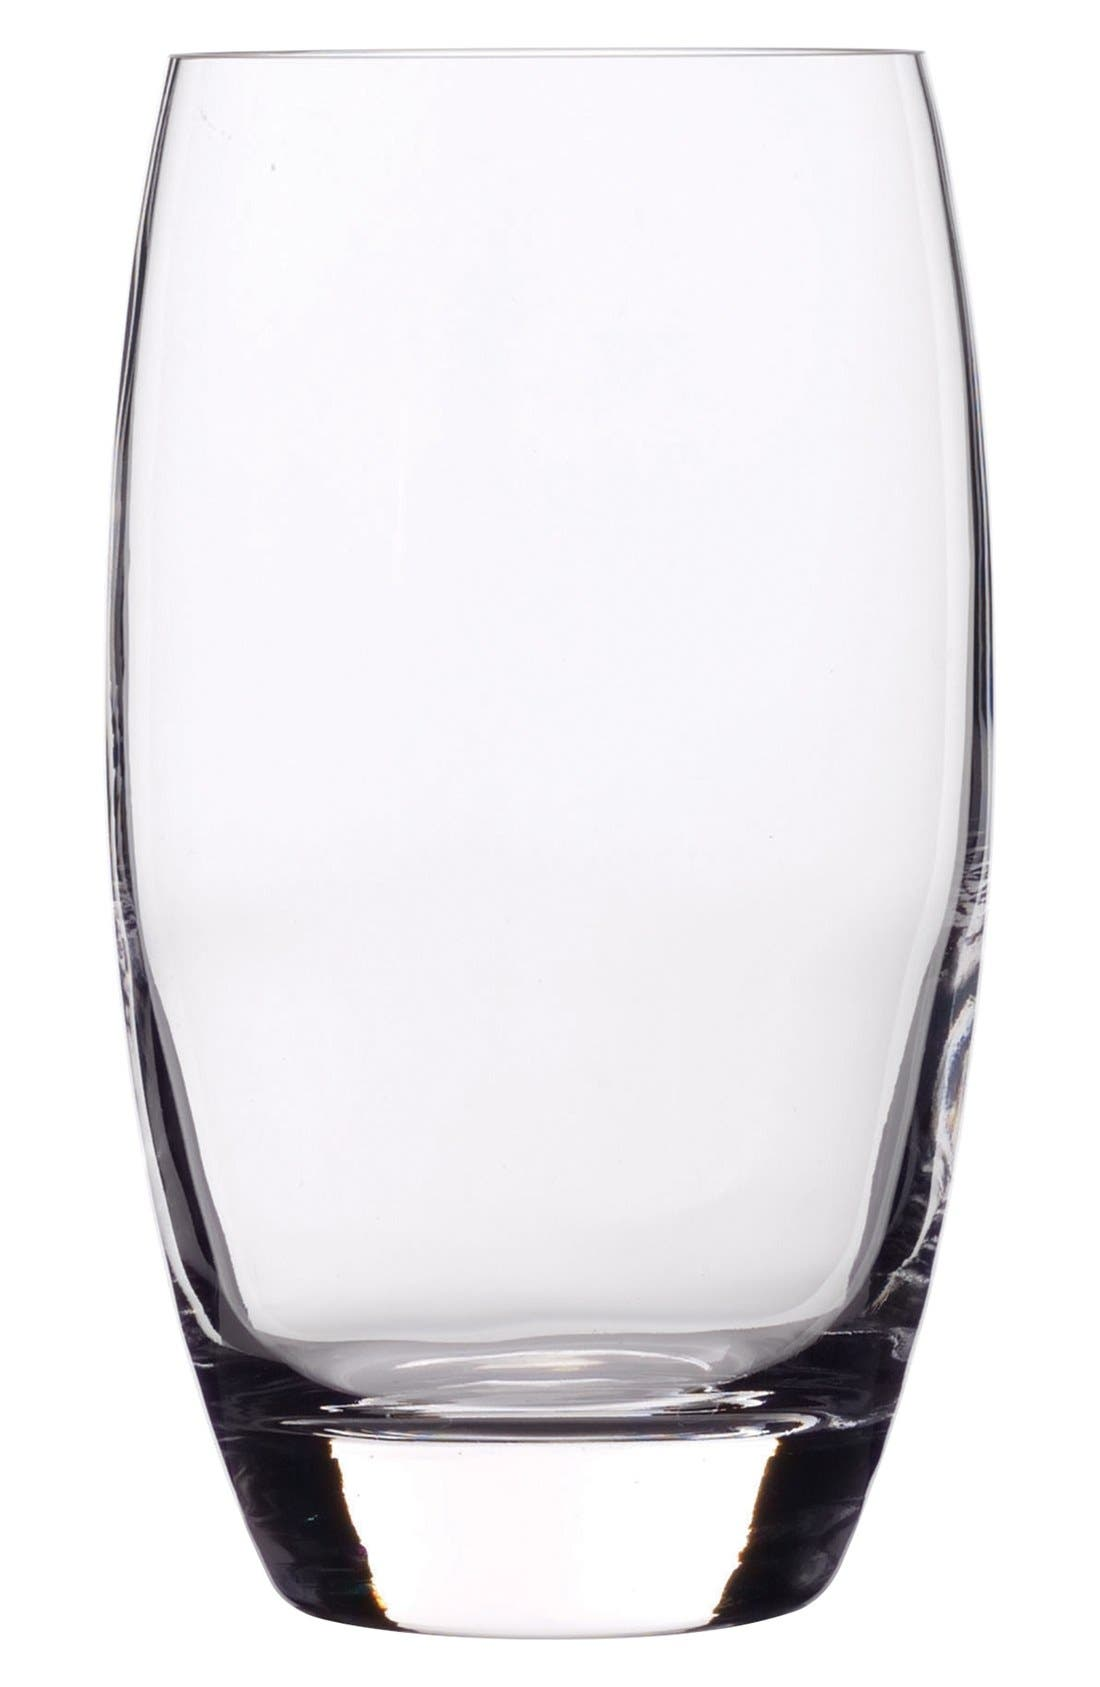 Main Image - Luigi Bormioli 'Crescendo' Beverage Glasses (Set of 4)